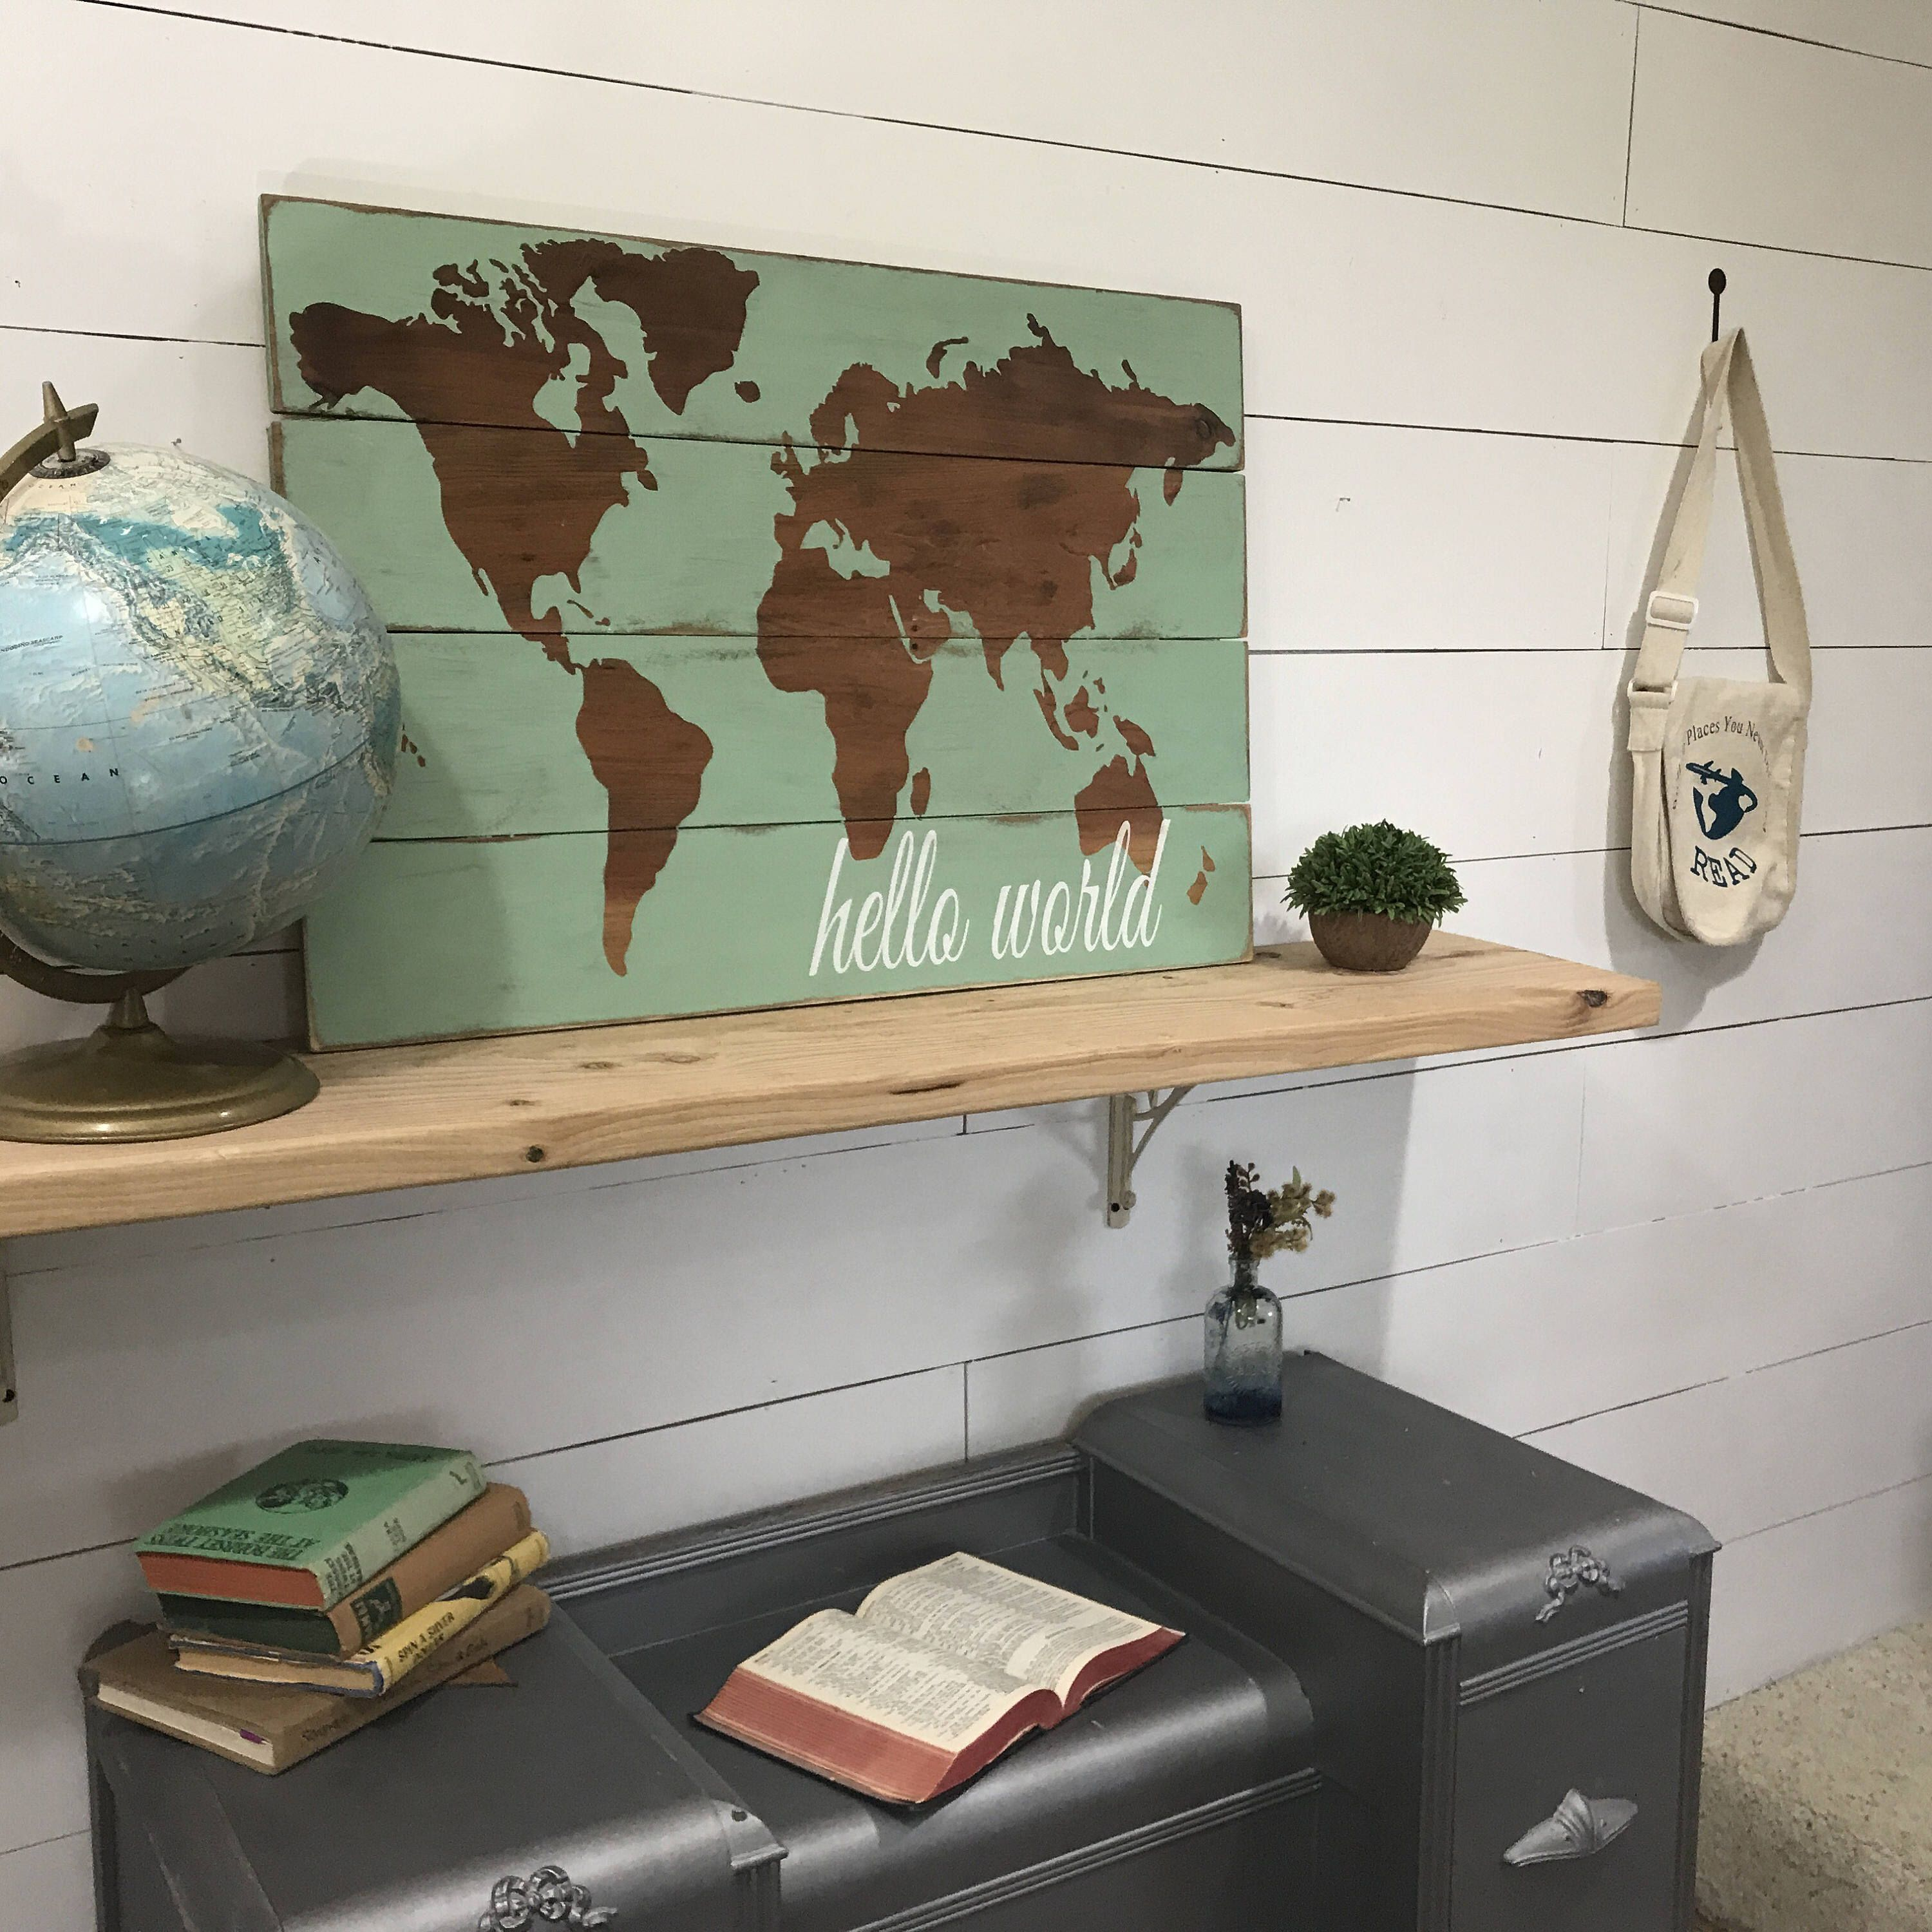 A personal favorite from my etsy shop httpsetsylisting hello world map world nursery decor baby room decor rustic wood map rustic world map wooden nursery map map wall hanging gumiabroncs Image collections